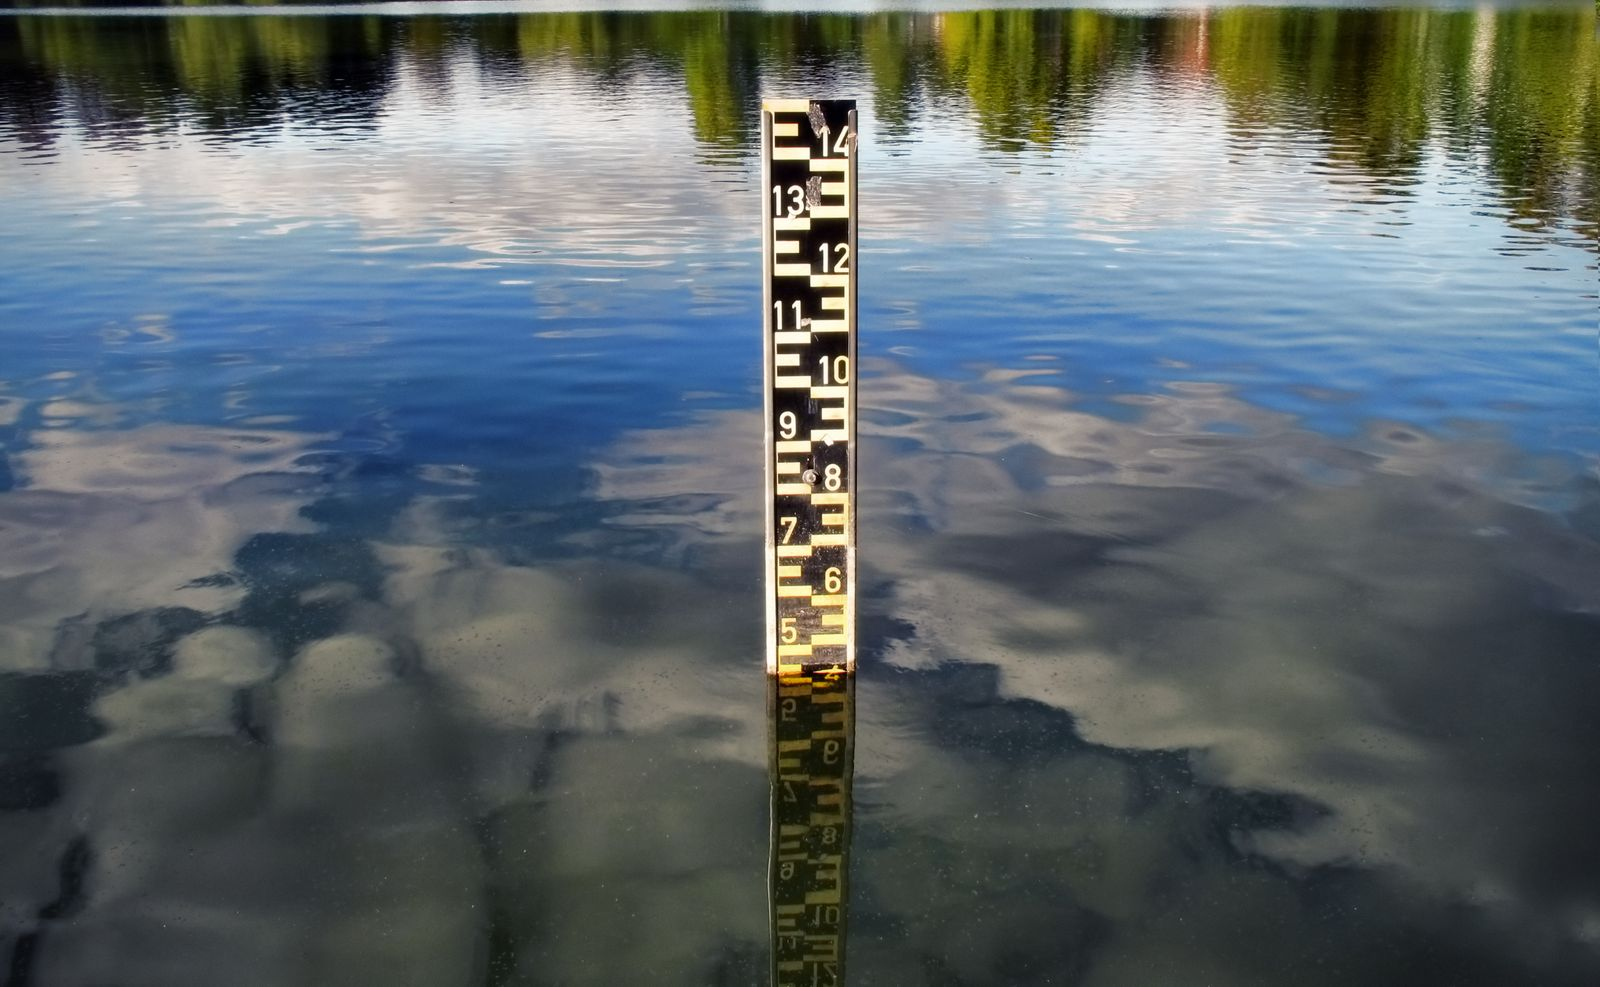 Scale indicating water level in a lake